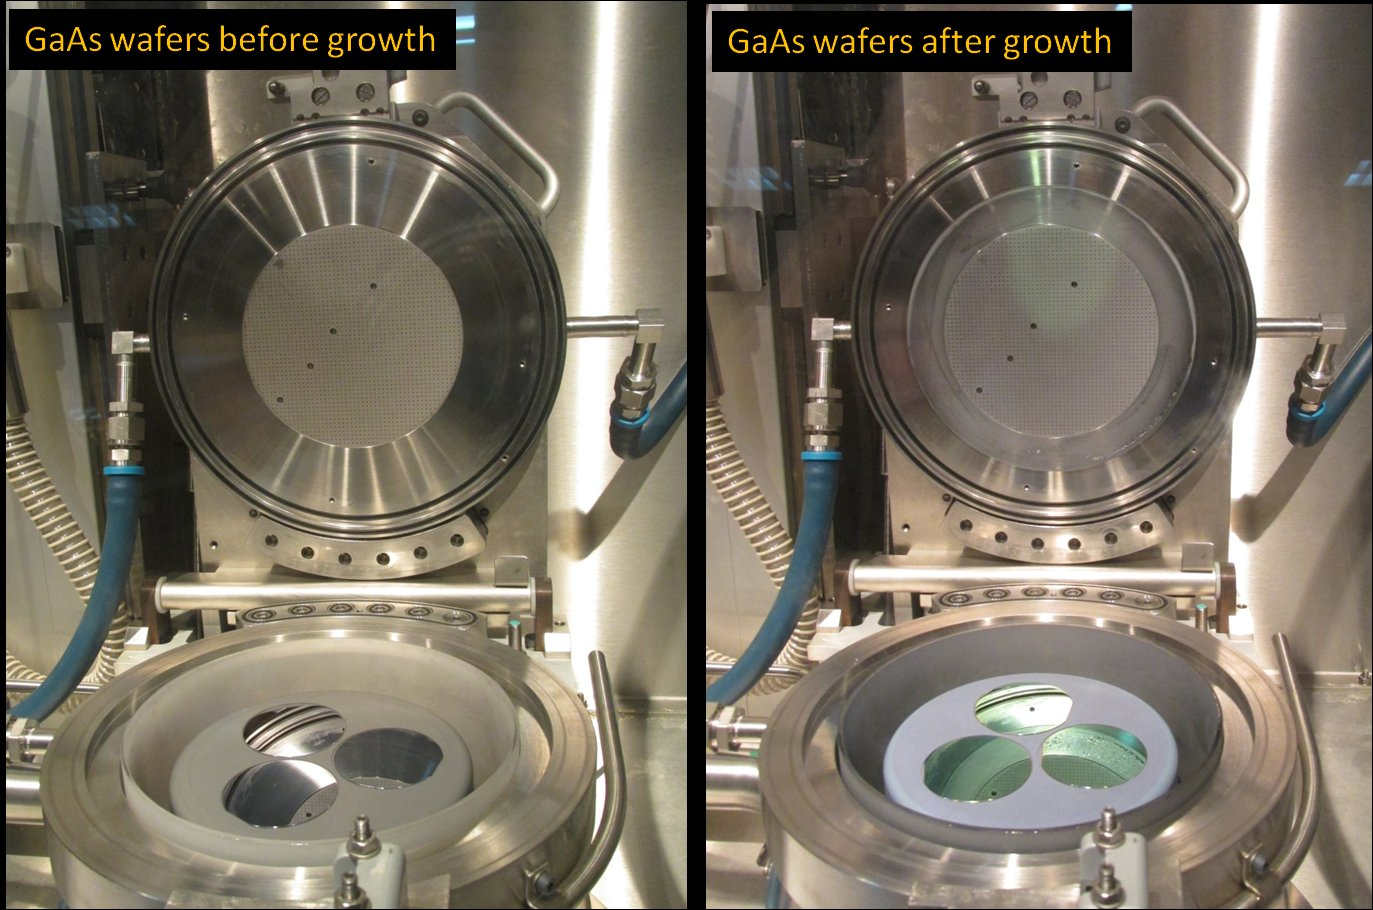 GaAs wafers growth